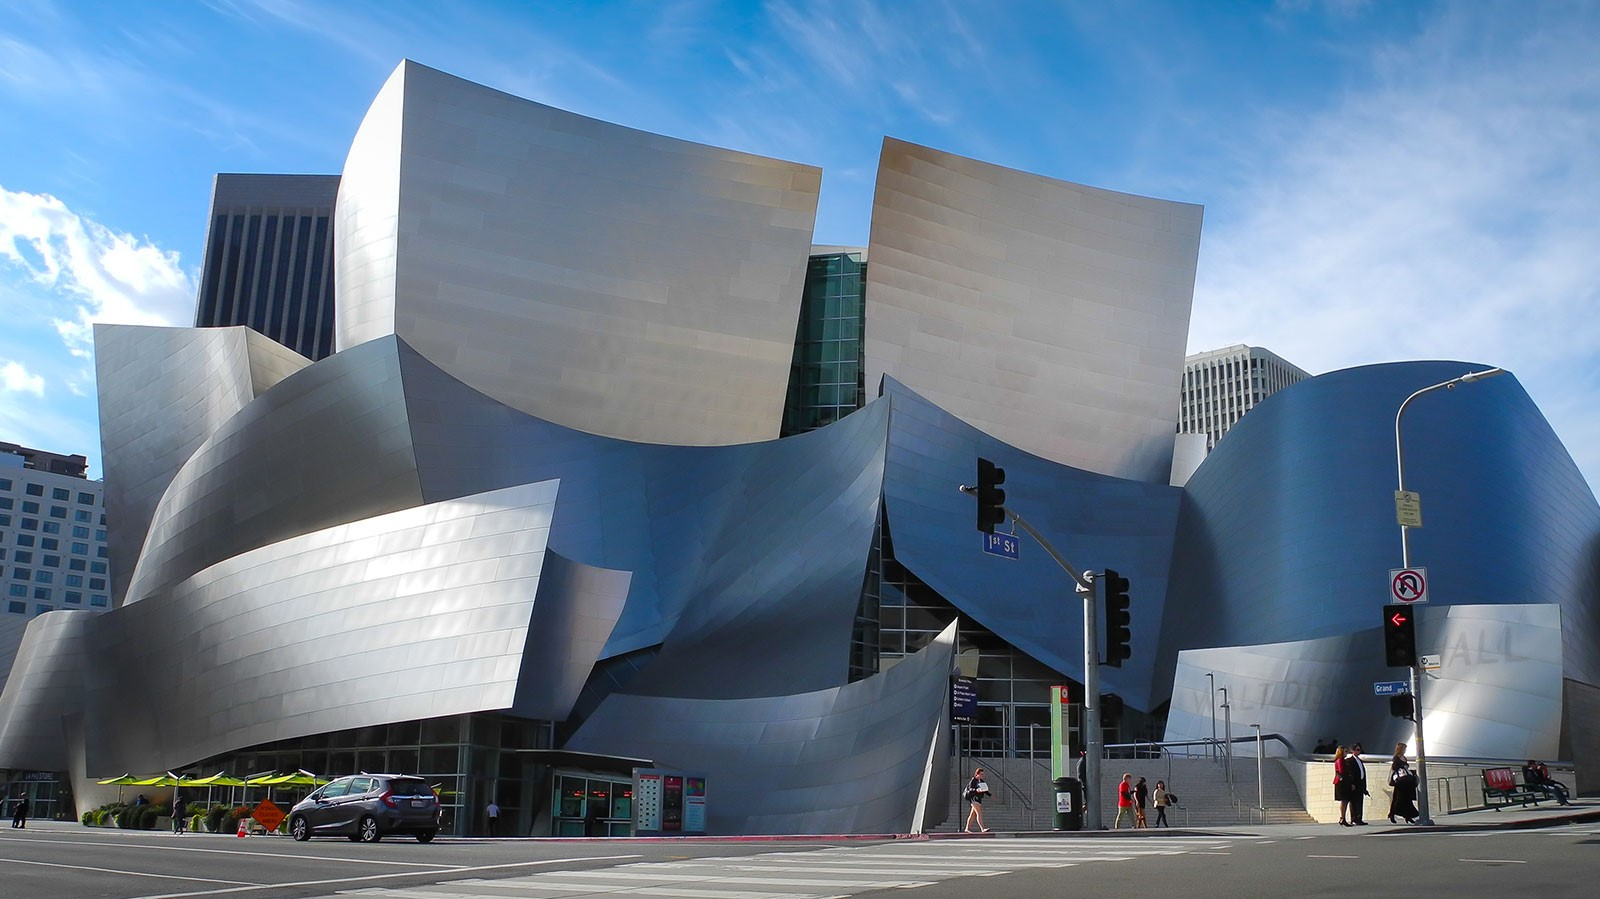 Walt Disney Concert Hall by Frank O Gehry: The greatest building of our time - Sheet2